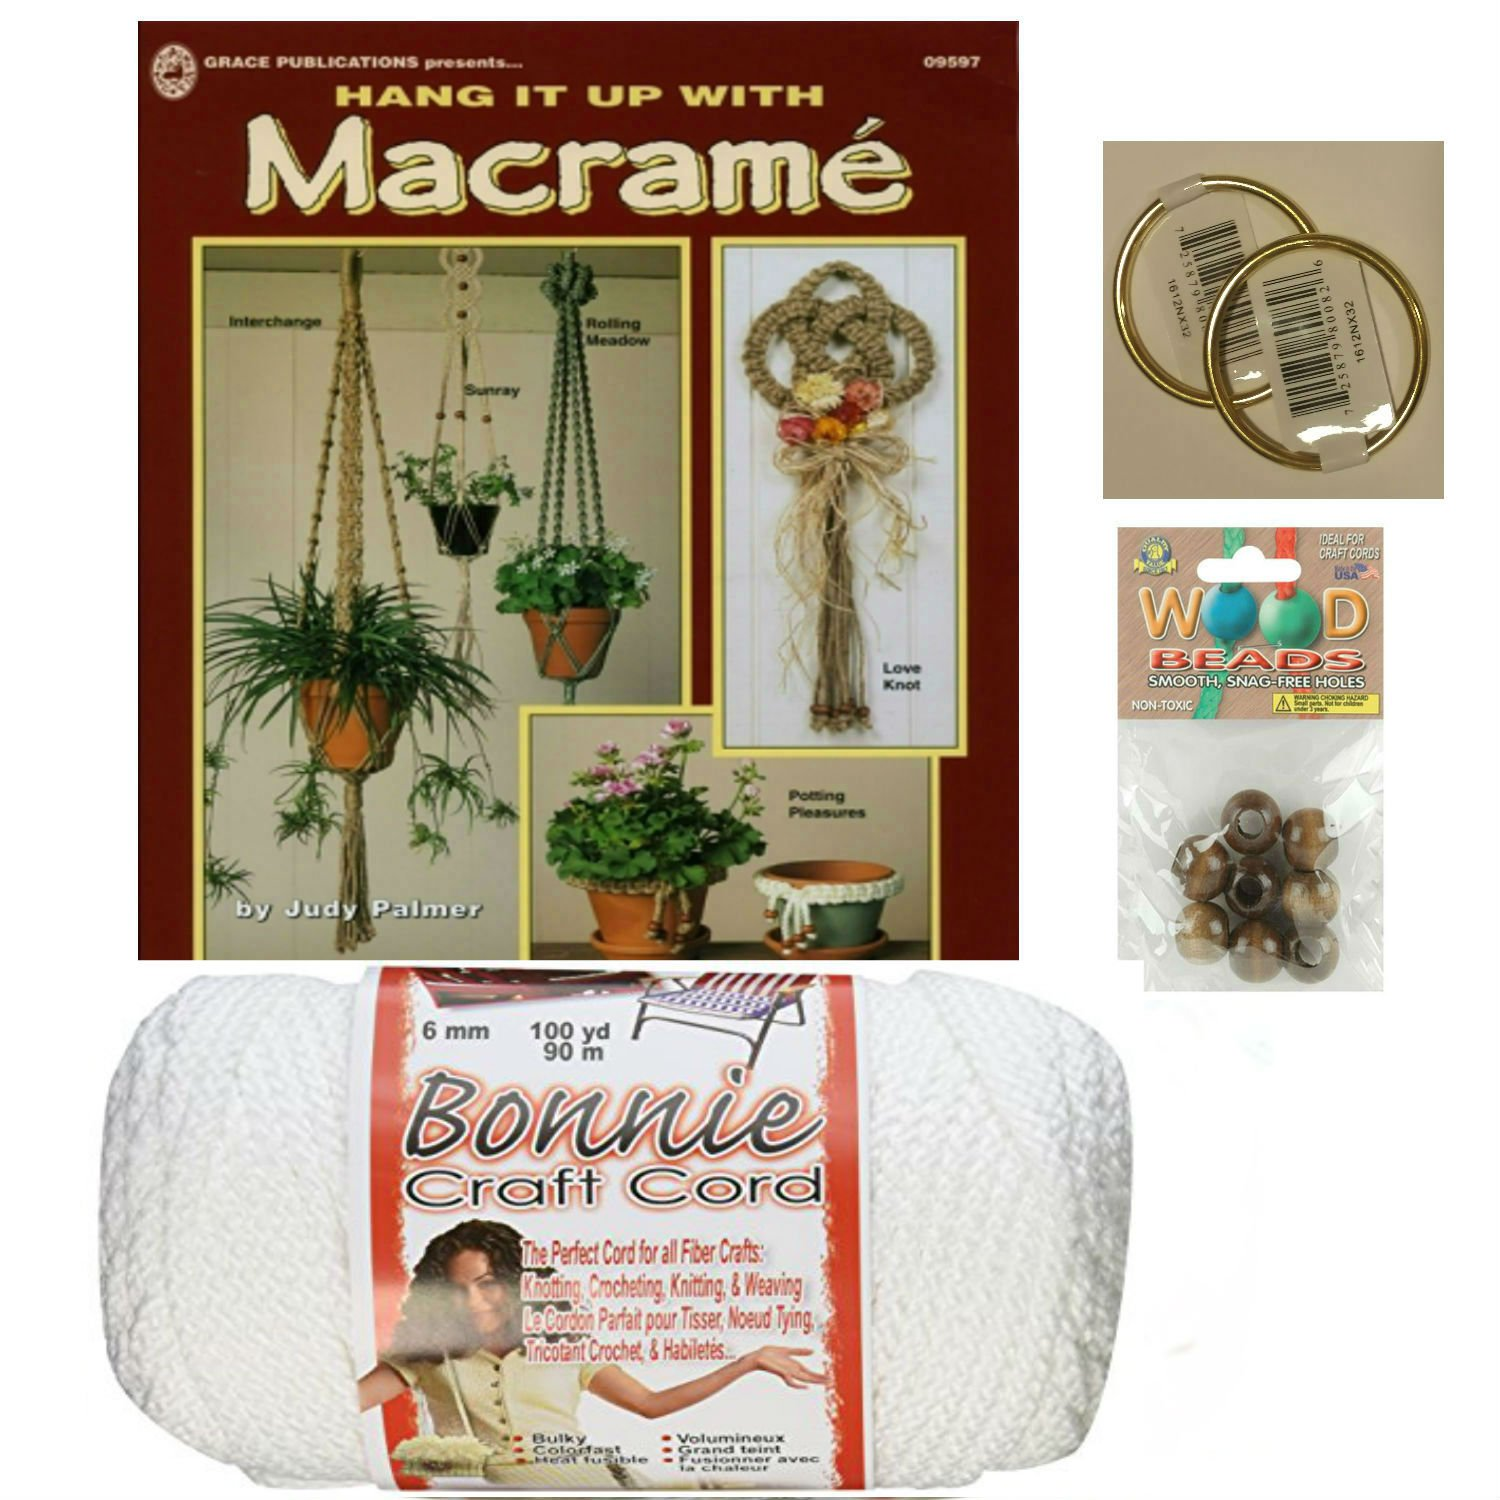 Macrame kit Bundle with Craft Cord, Wooden Beads, Rings, and Project Book for Plant Hangers and Wall hangings (White)